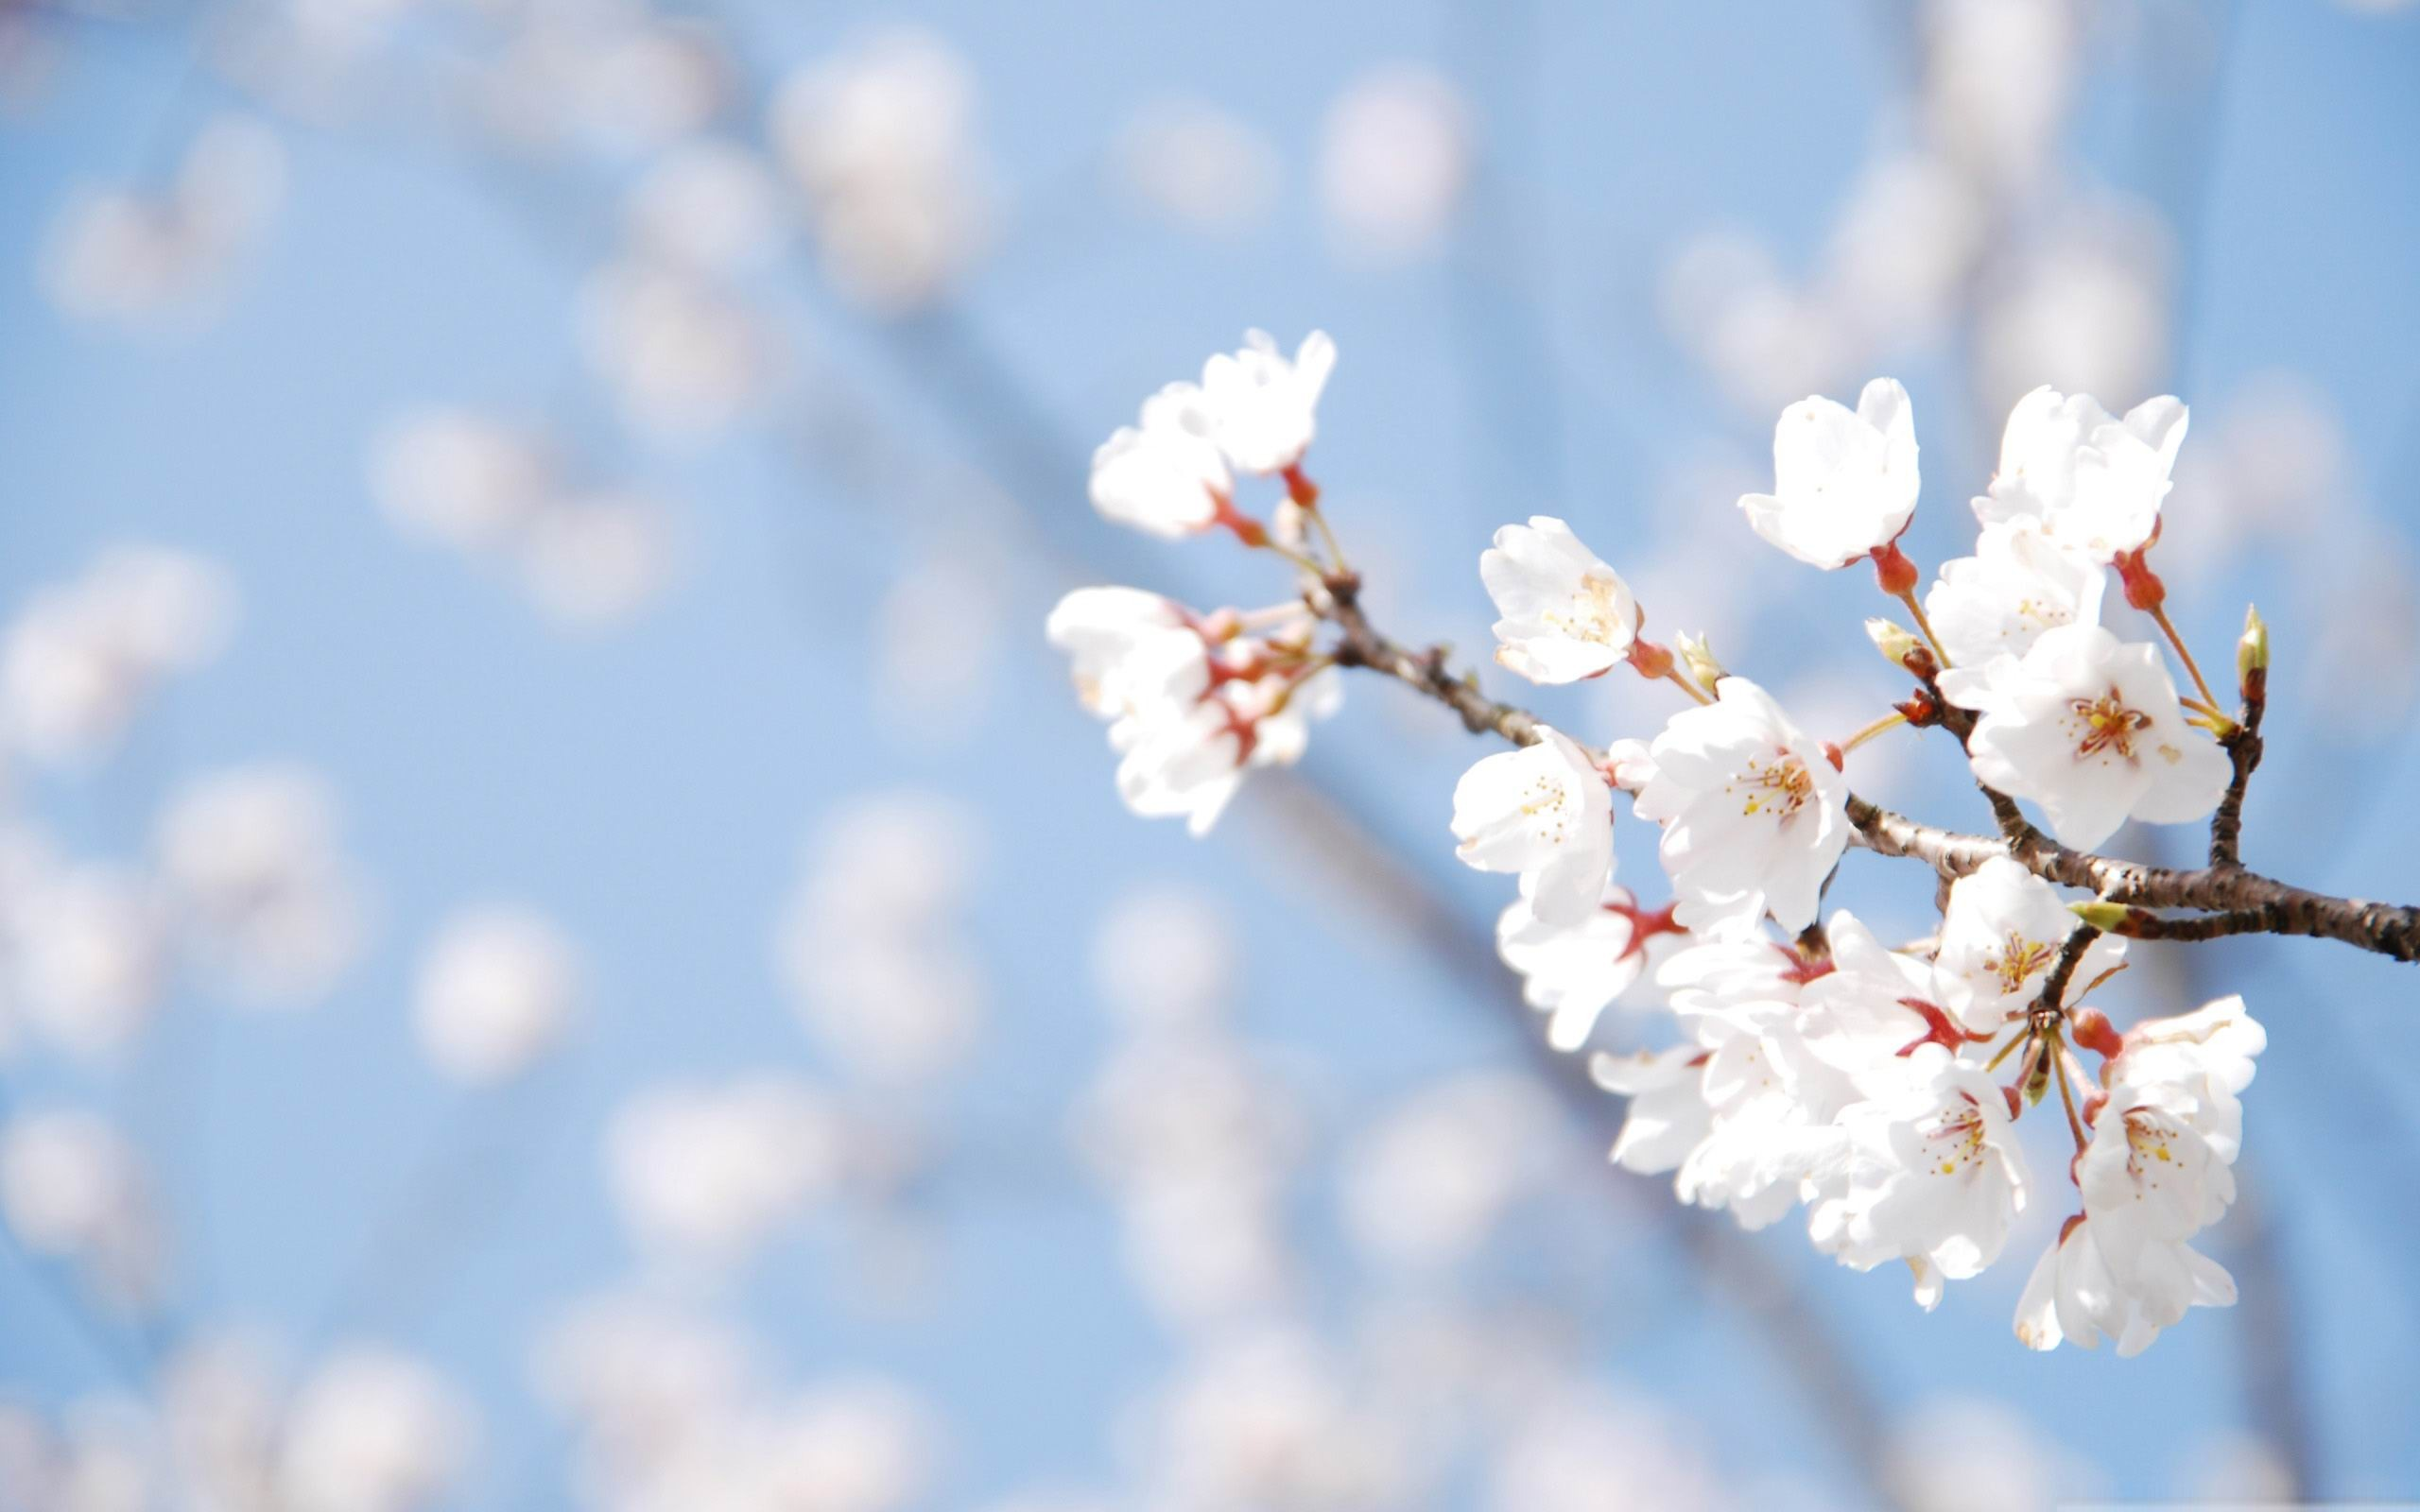 Spring Image Backgrounds For Powerpoint Templates Ppt Backgrounds